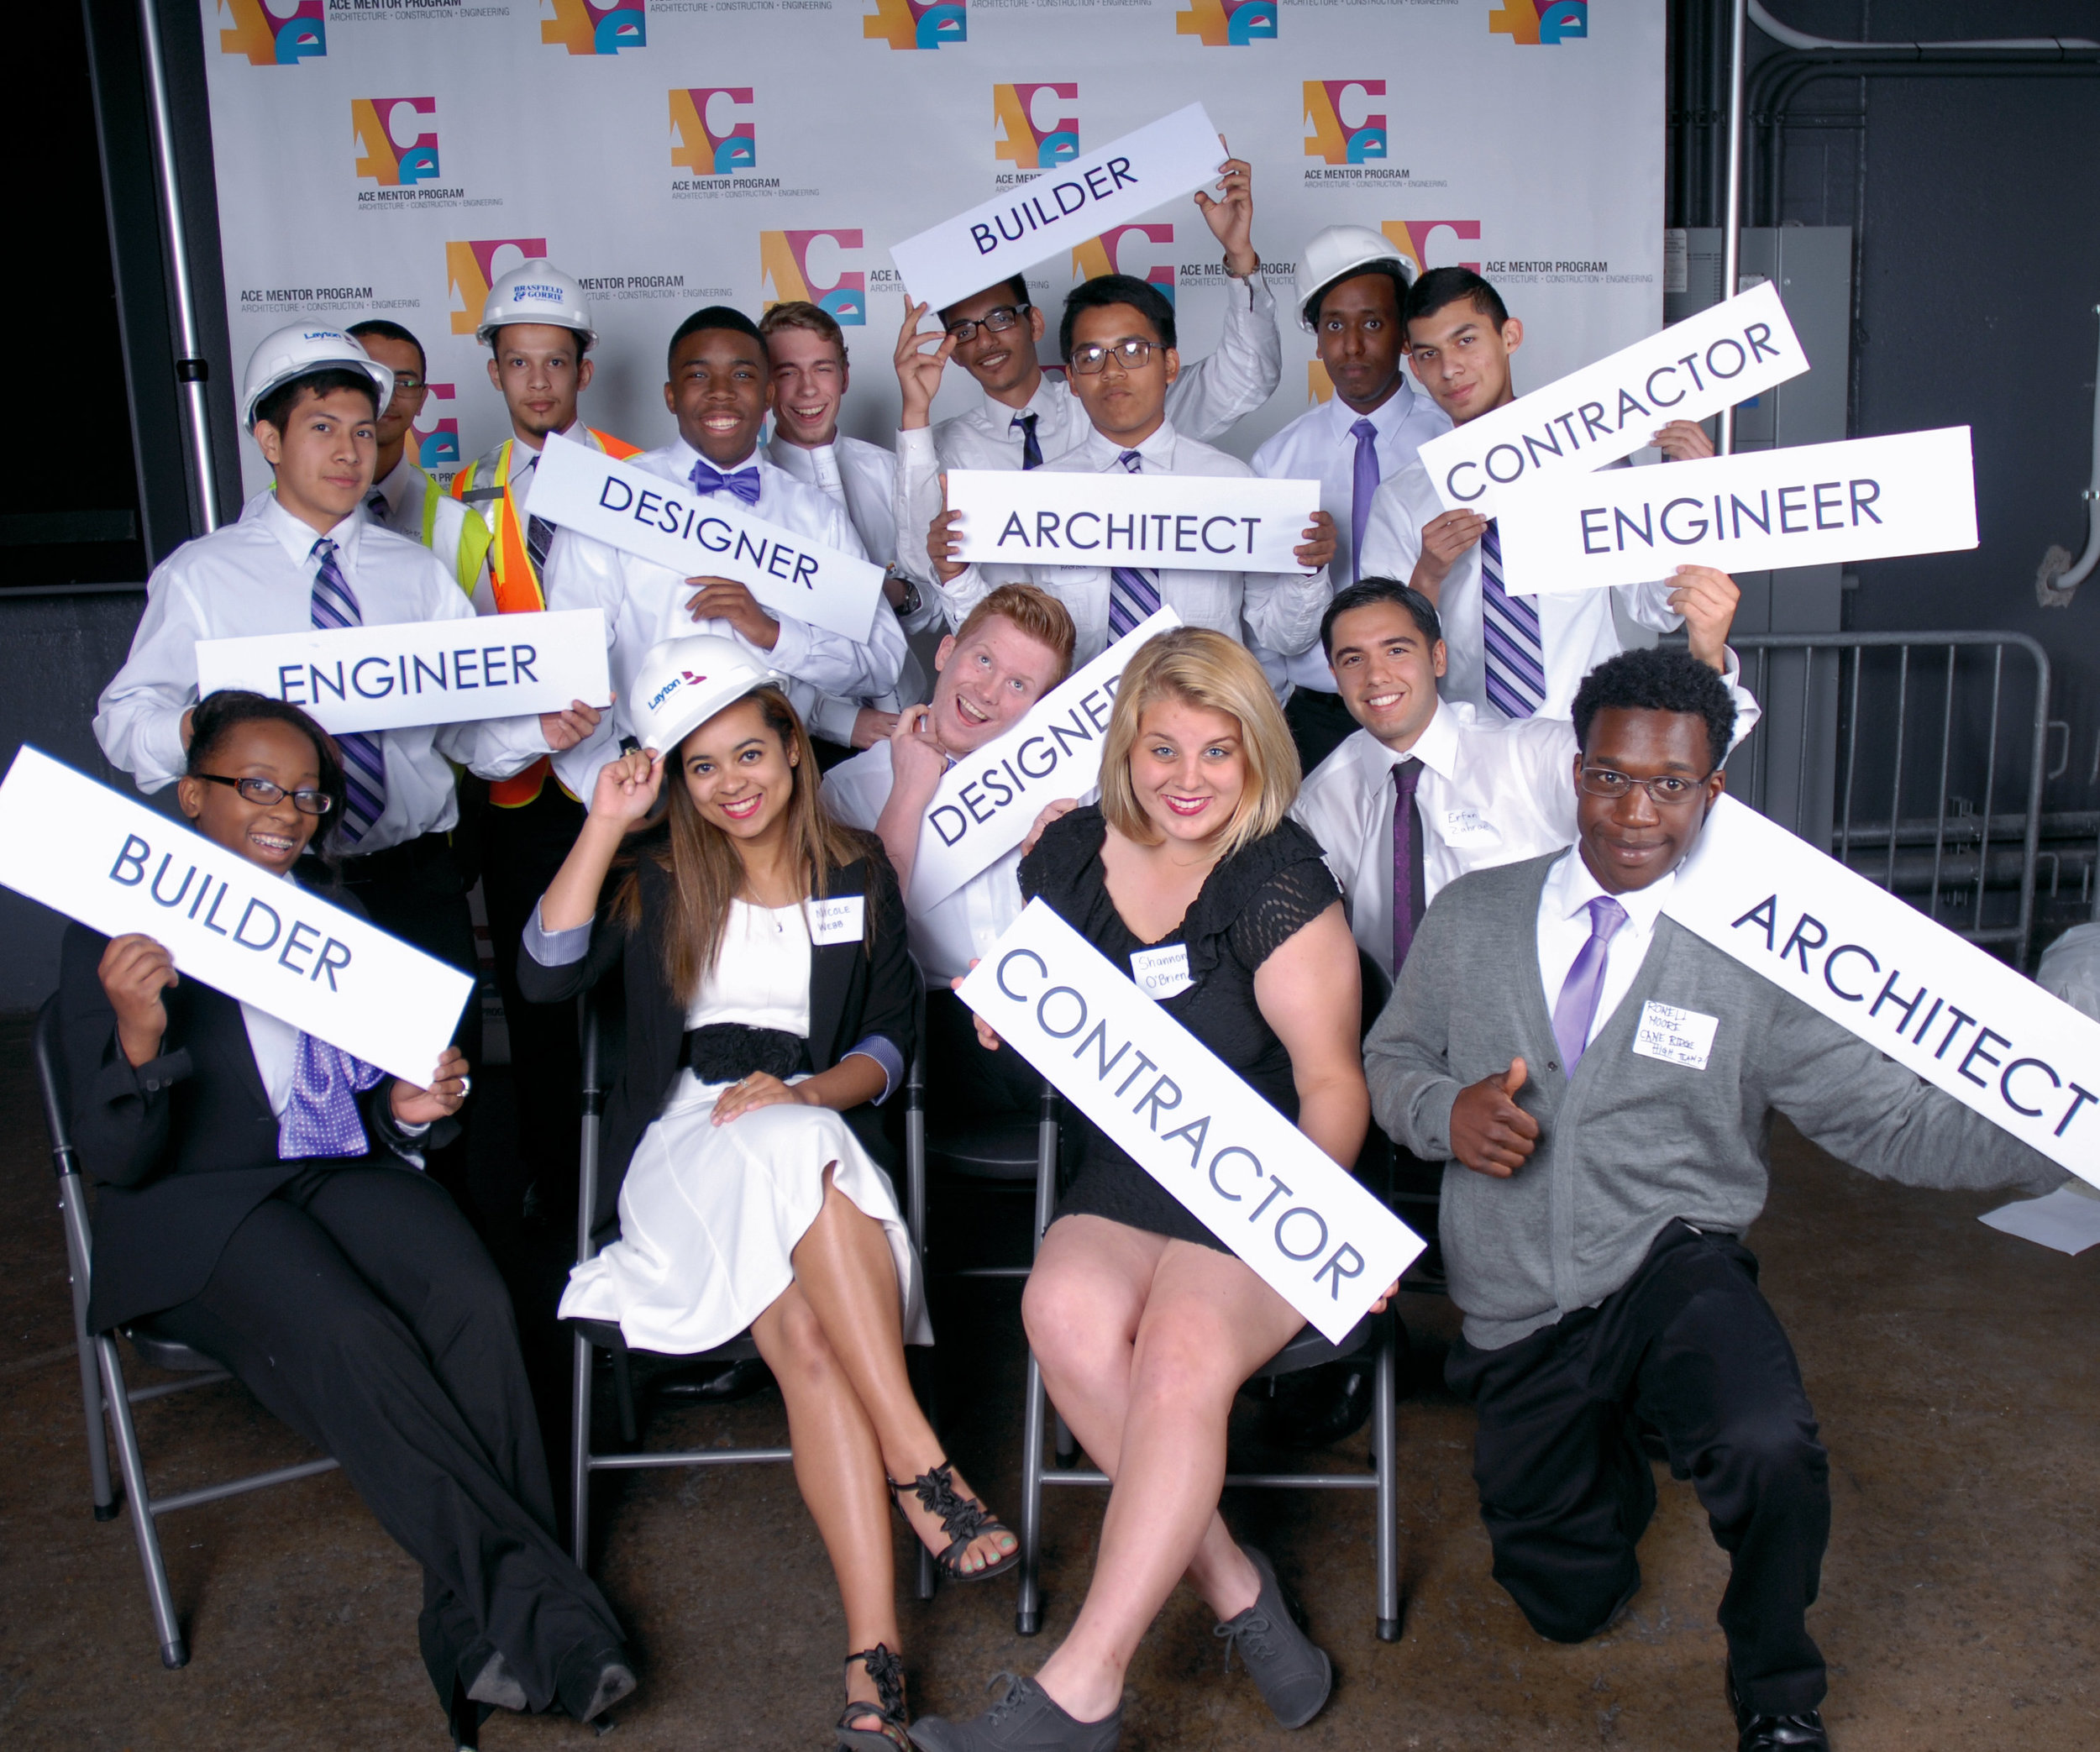 Students from the ACE Mentor program in Nashville. Photo courtesy of ACE.